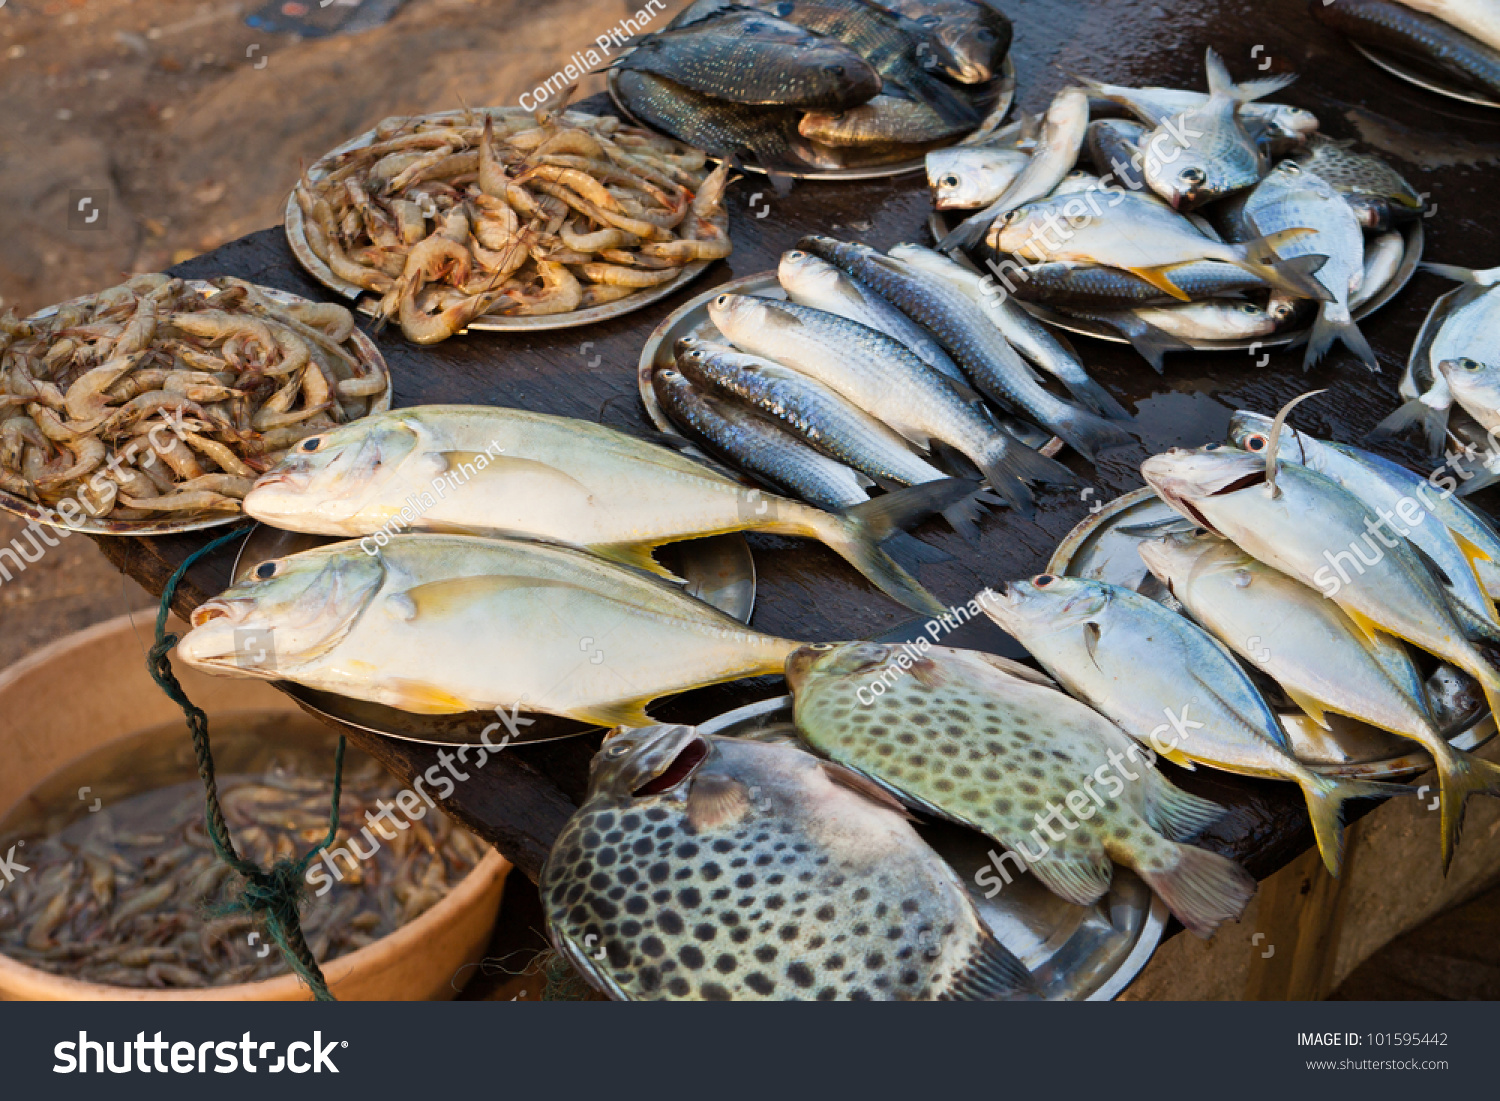 Freshwater fish kerala - Fish Market In Kerala India